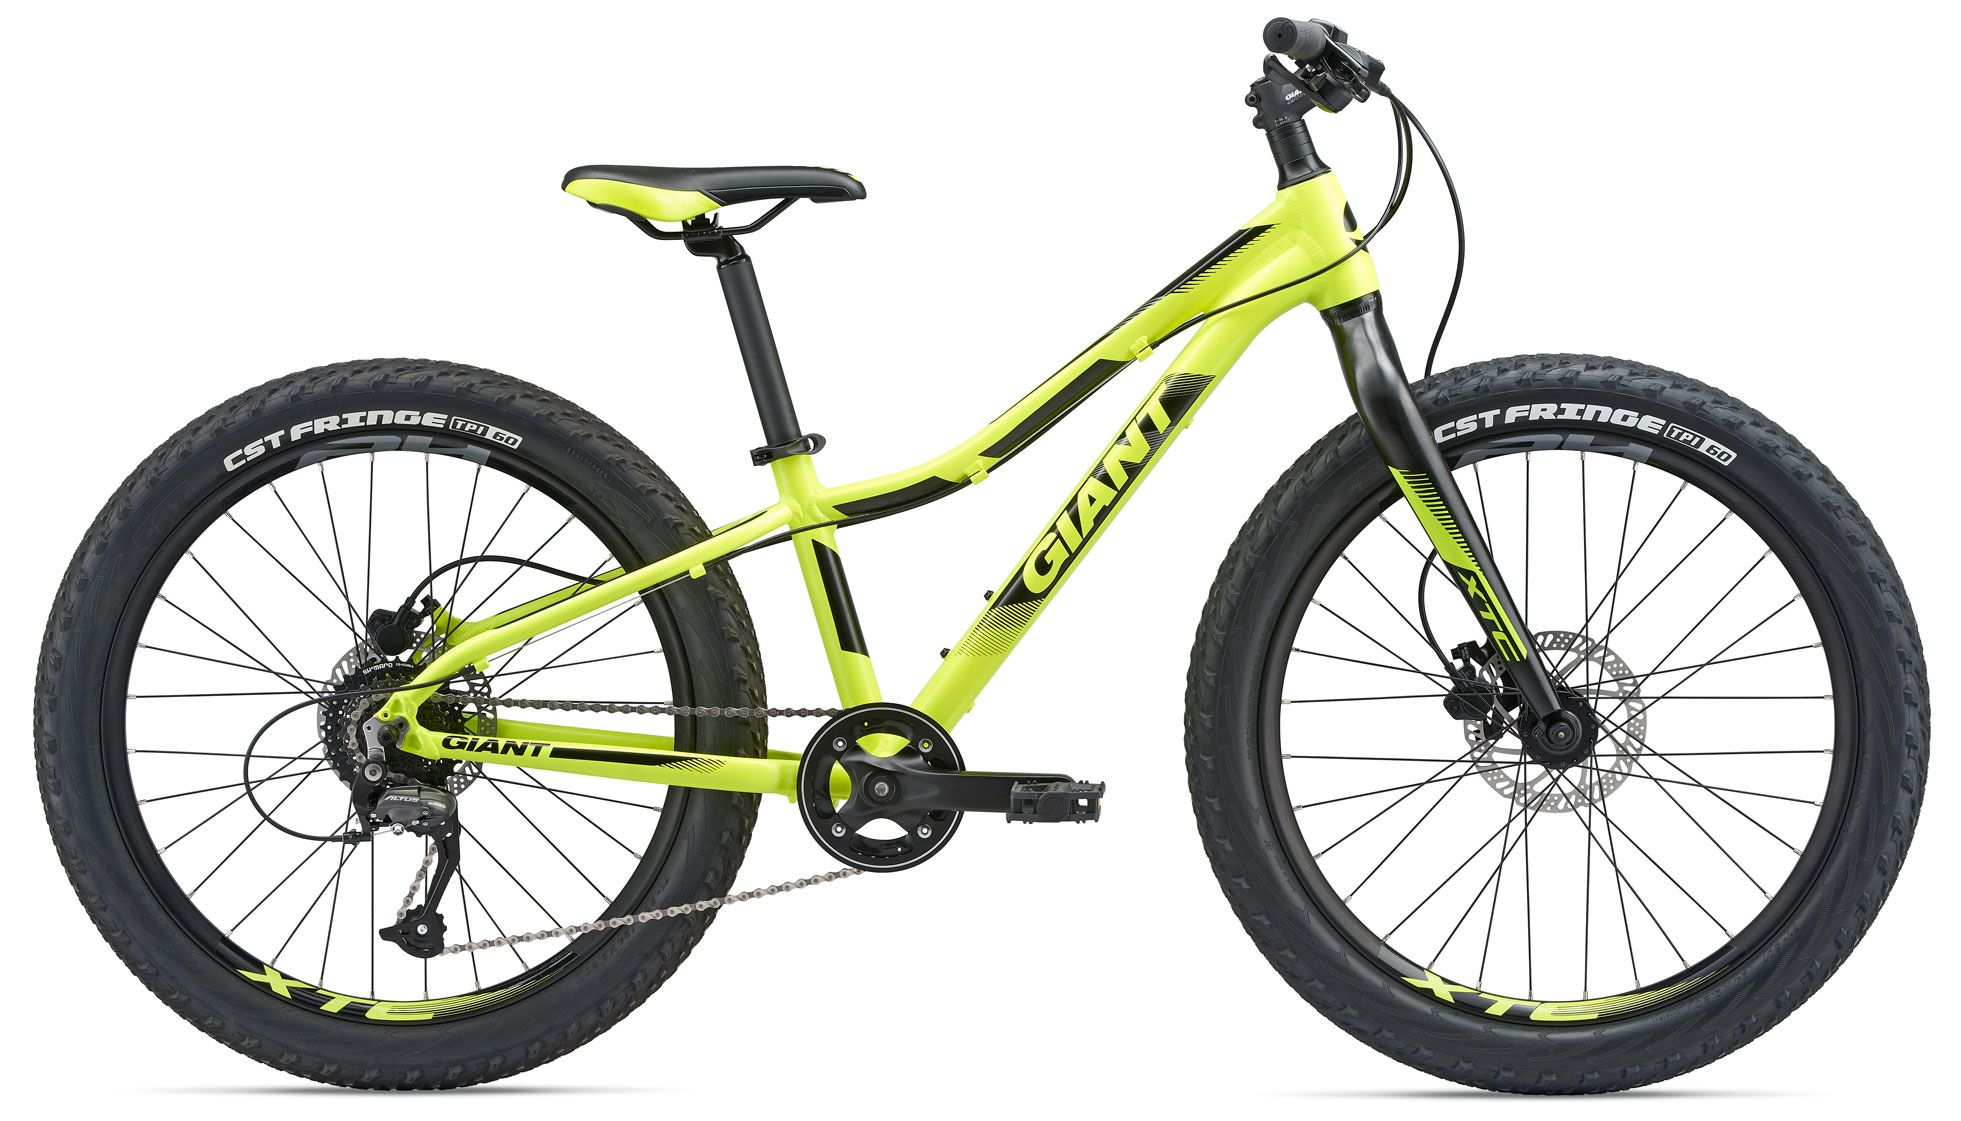 Велосипед Giant XTC Jr 24+ 2018 велосипед giant xtc composite 1 2013